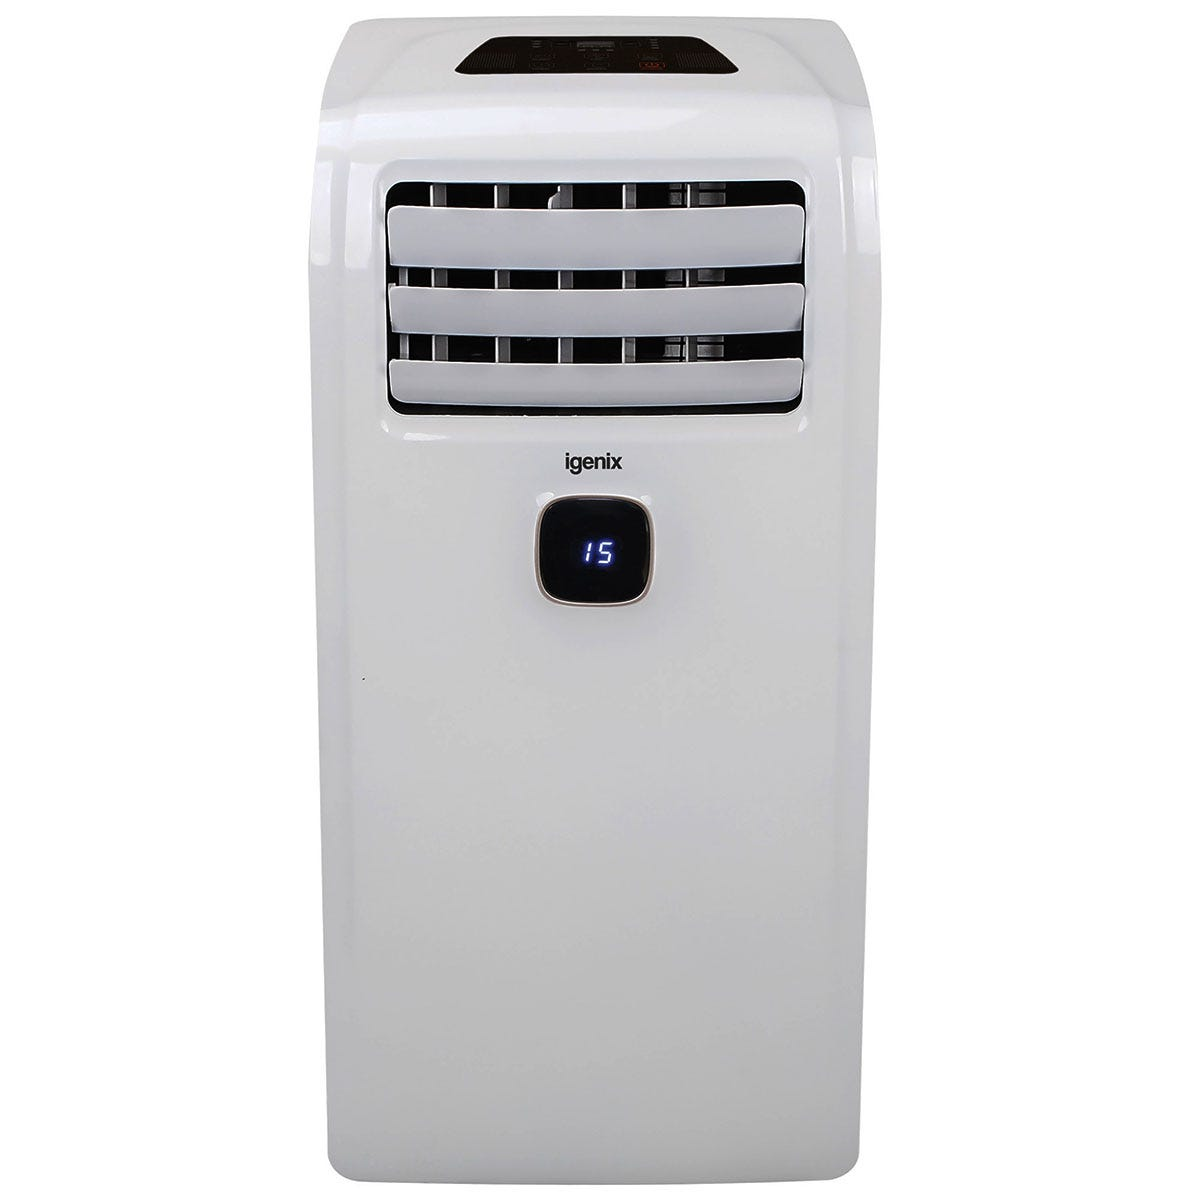 Igenix IG9911 9000BTU 3-in-1 Cooling, Fan and Dehumidifier Portable Air Conditioner - White